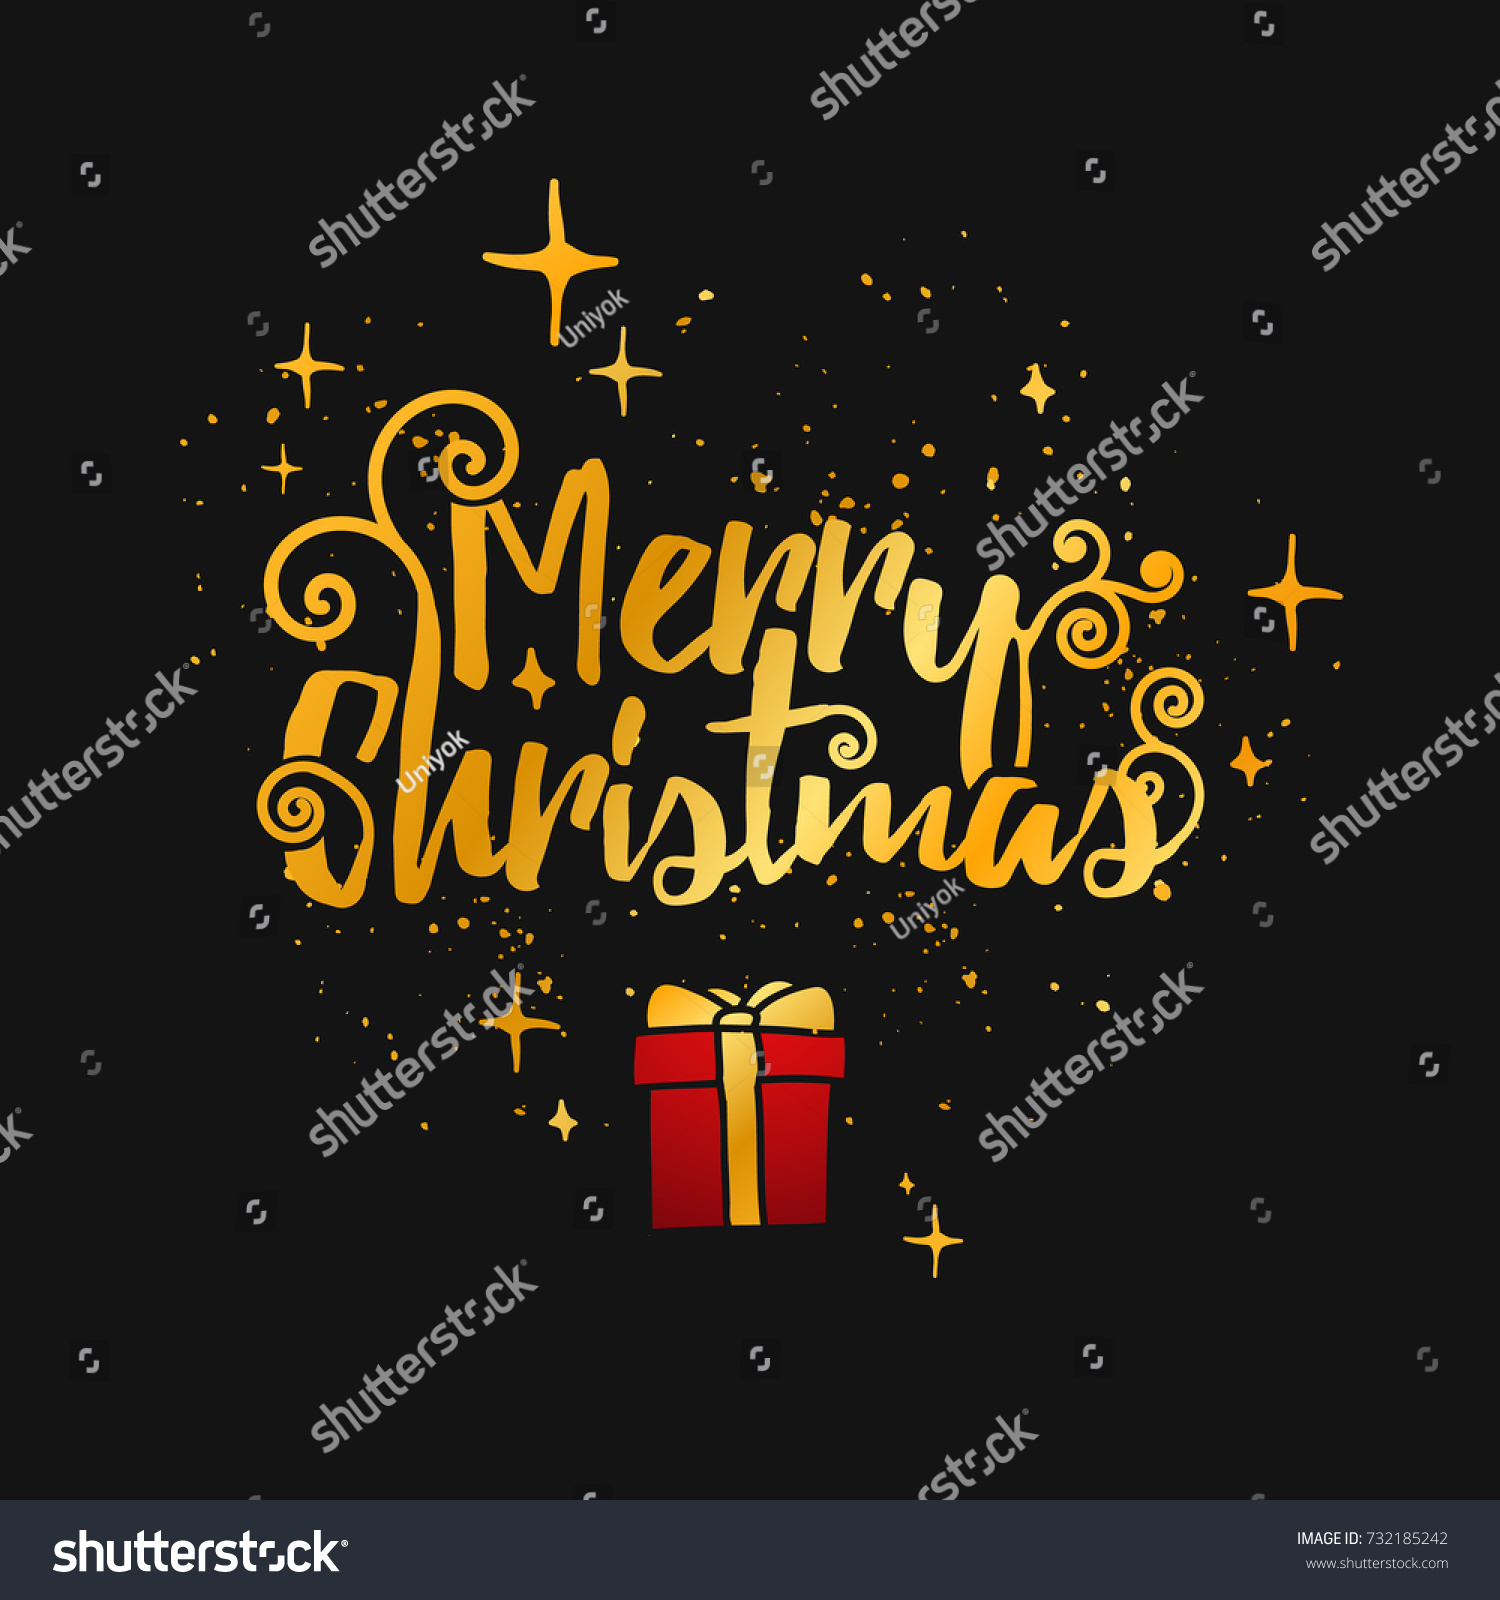 Template Designs Merry Christmas Cards Modern Stock Illustration ...